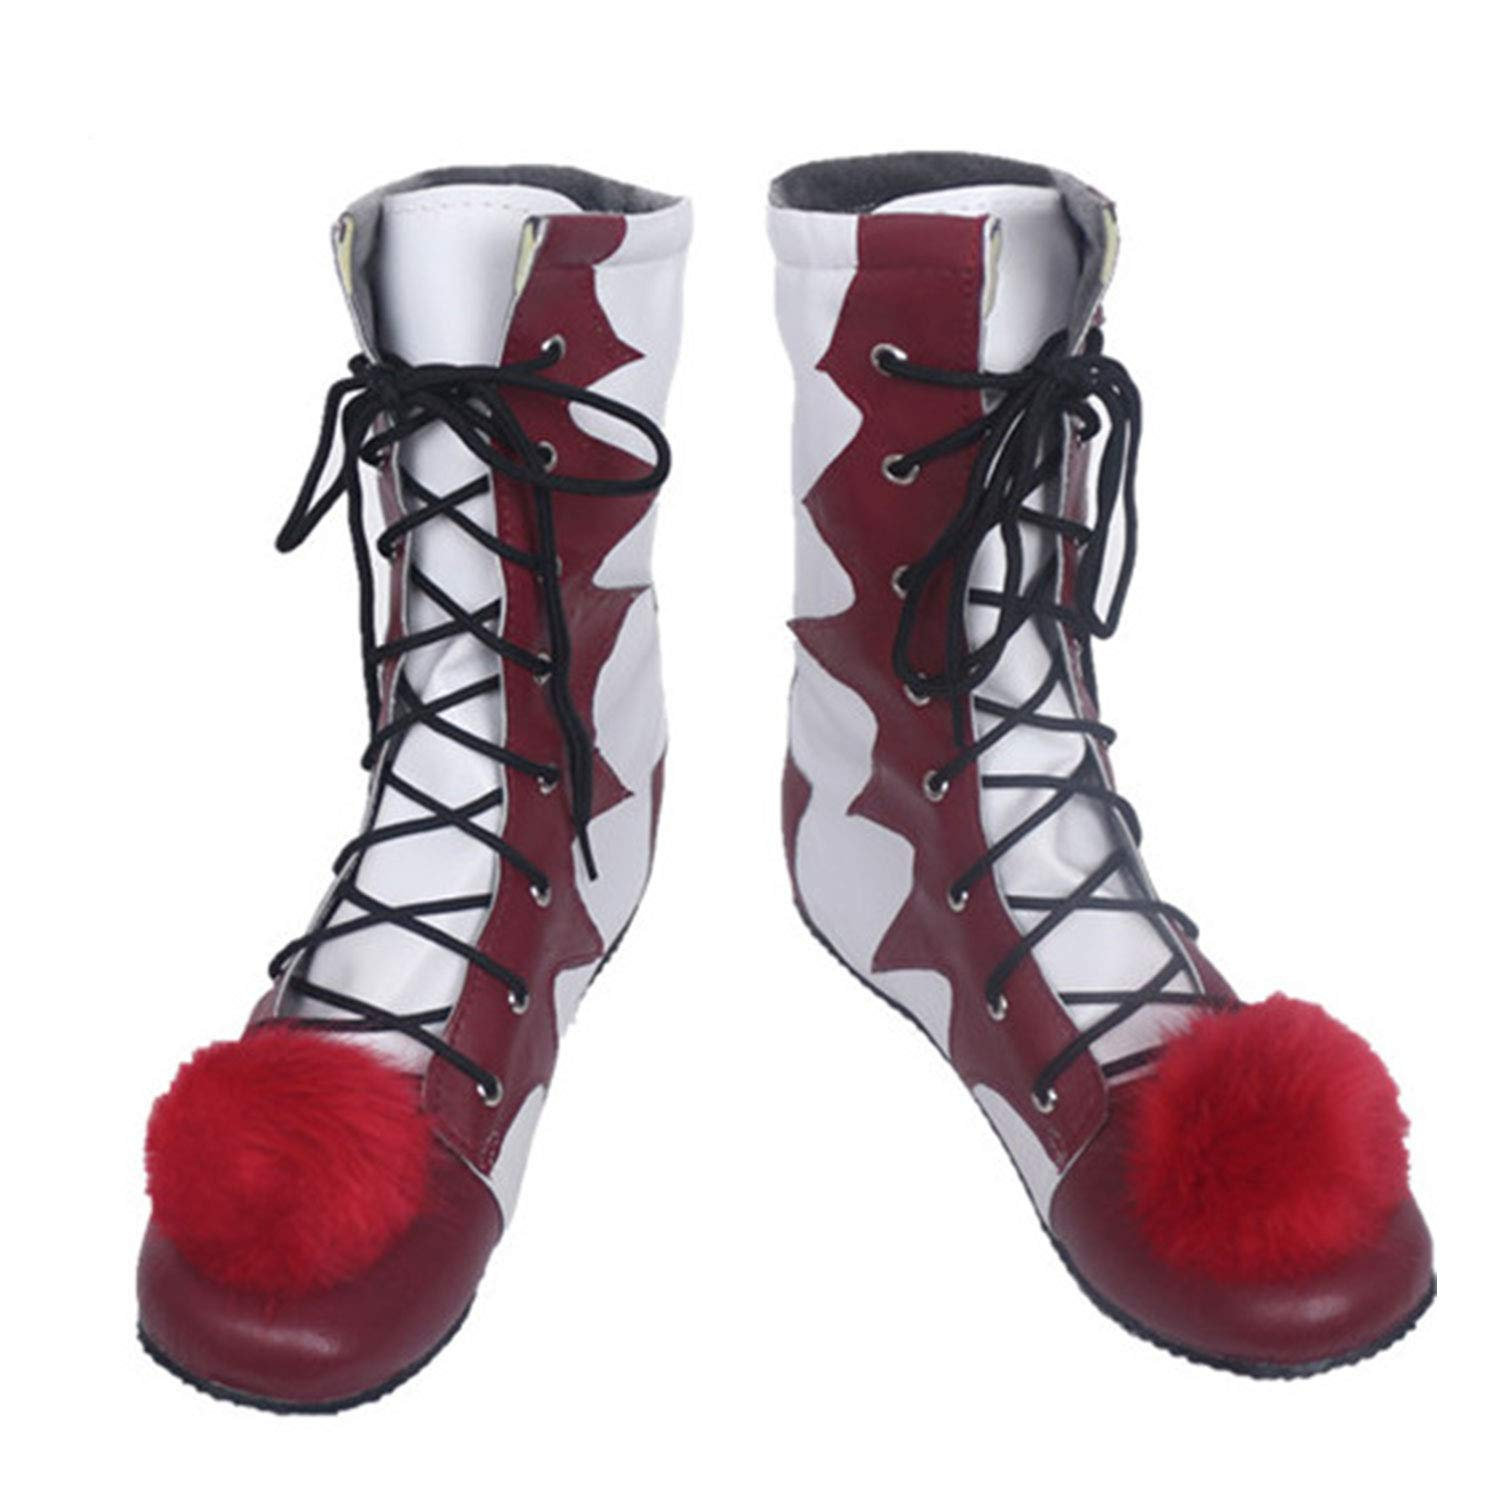 Yohuiya Stephen Kings It Pennywise Cosplay Shoes and Mask Horrible Clown Boots Custom Halloween Christmas Party Accessories